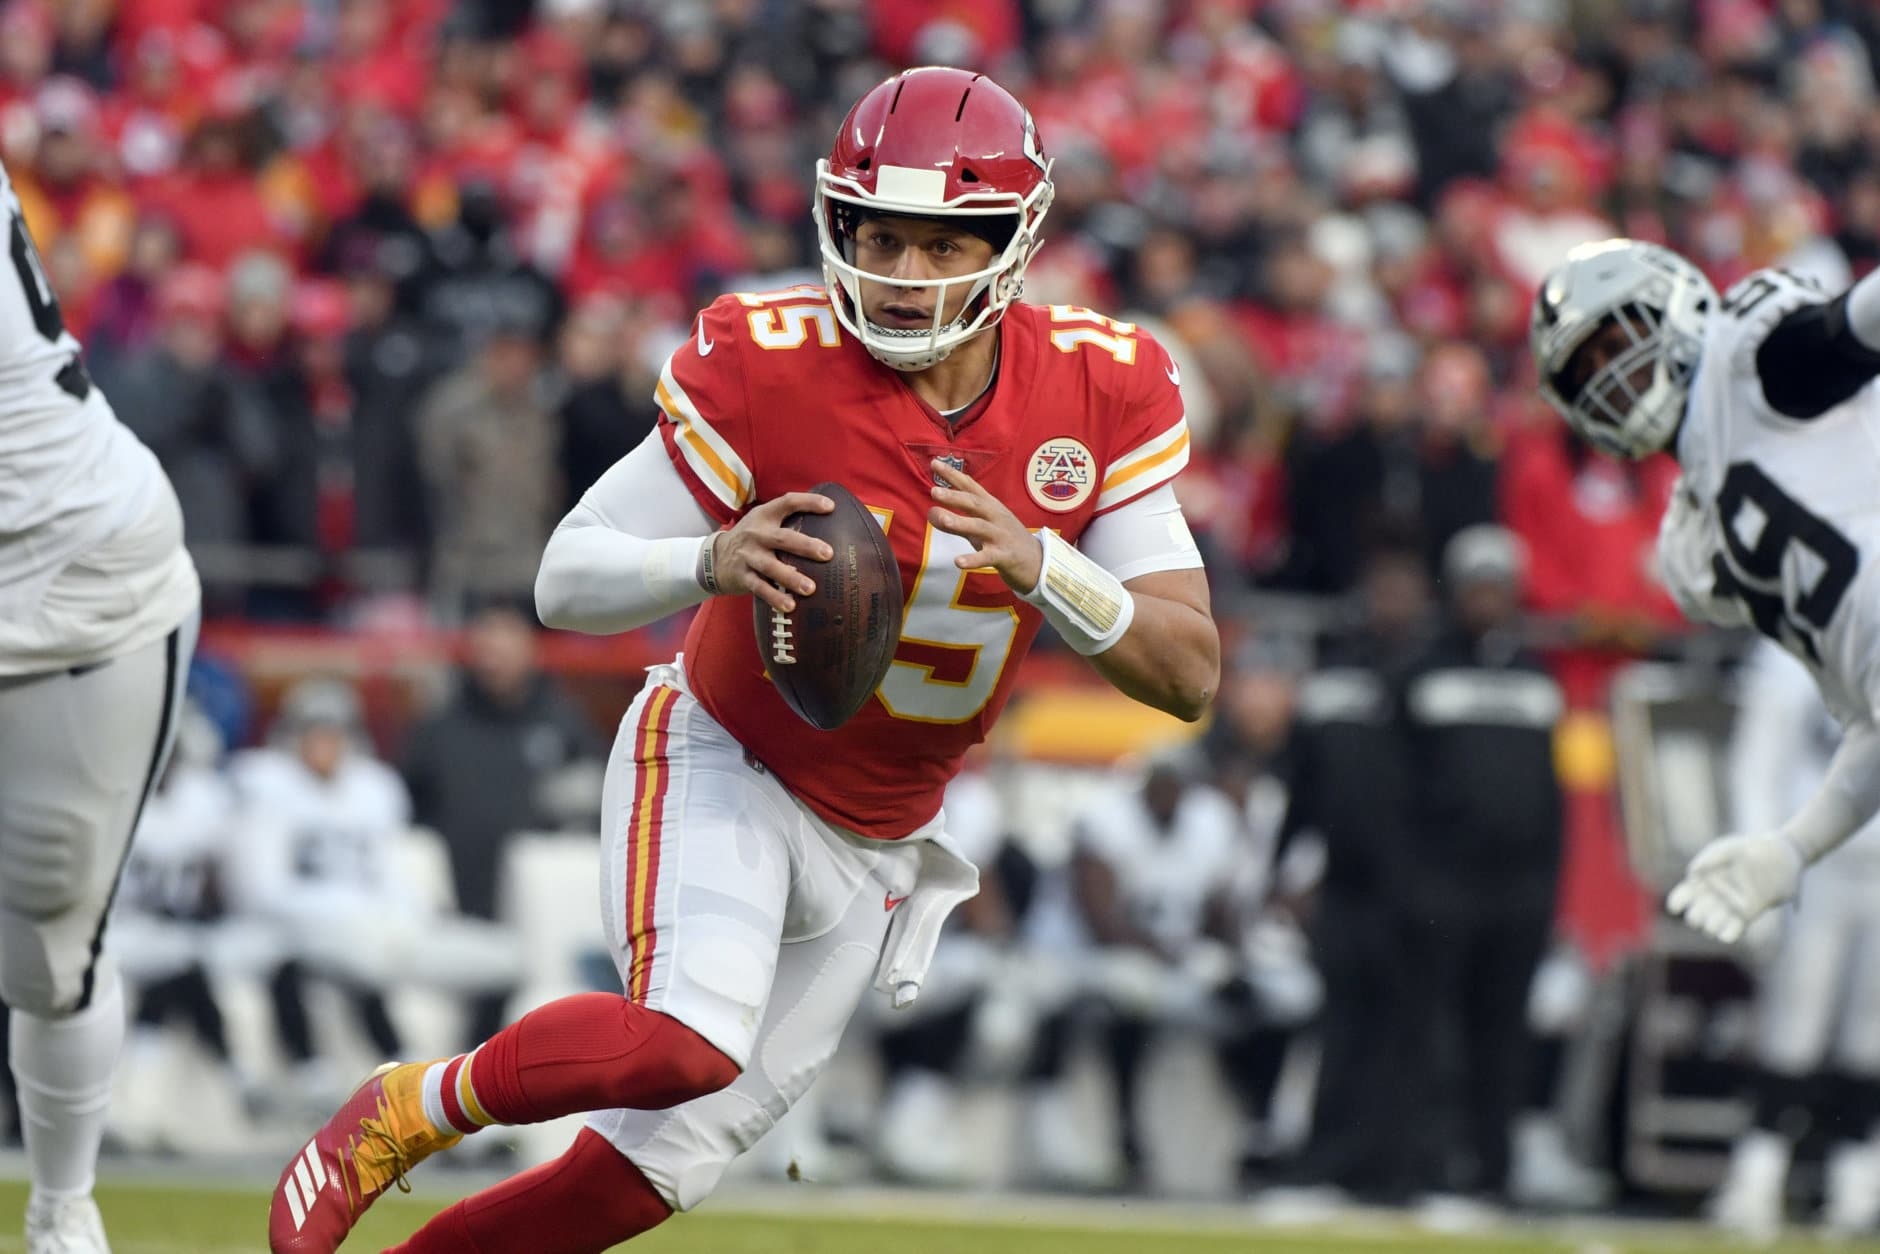 Kansas City Chiefs quarterback Patrick Mahomes (15) scrambles between Oakland Raiders defensive tackle Johnathan Hankins (90) and defensive end Arden Key (99) during the first half of an NFL football game in Kansas City, Mo., Sunday, Dec. 30, 2018. (AP Photo/Ed Zurga)